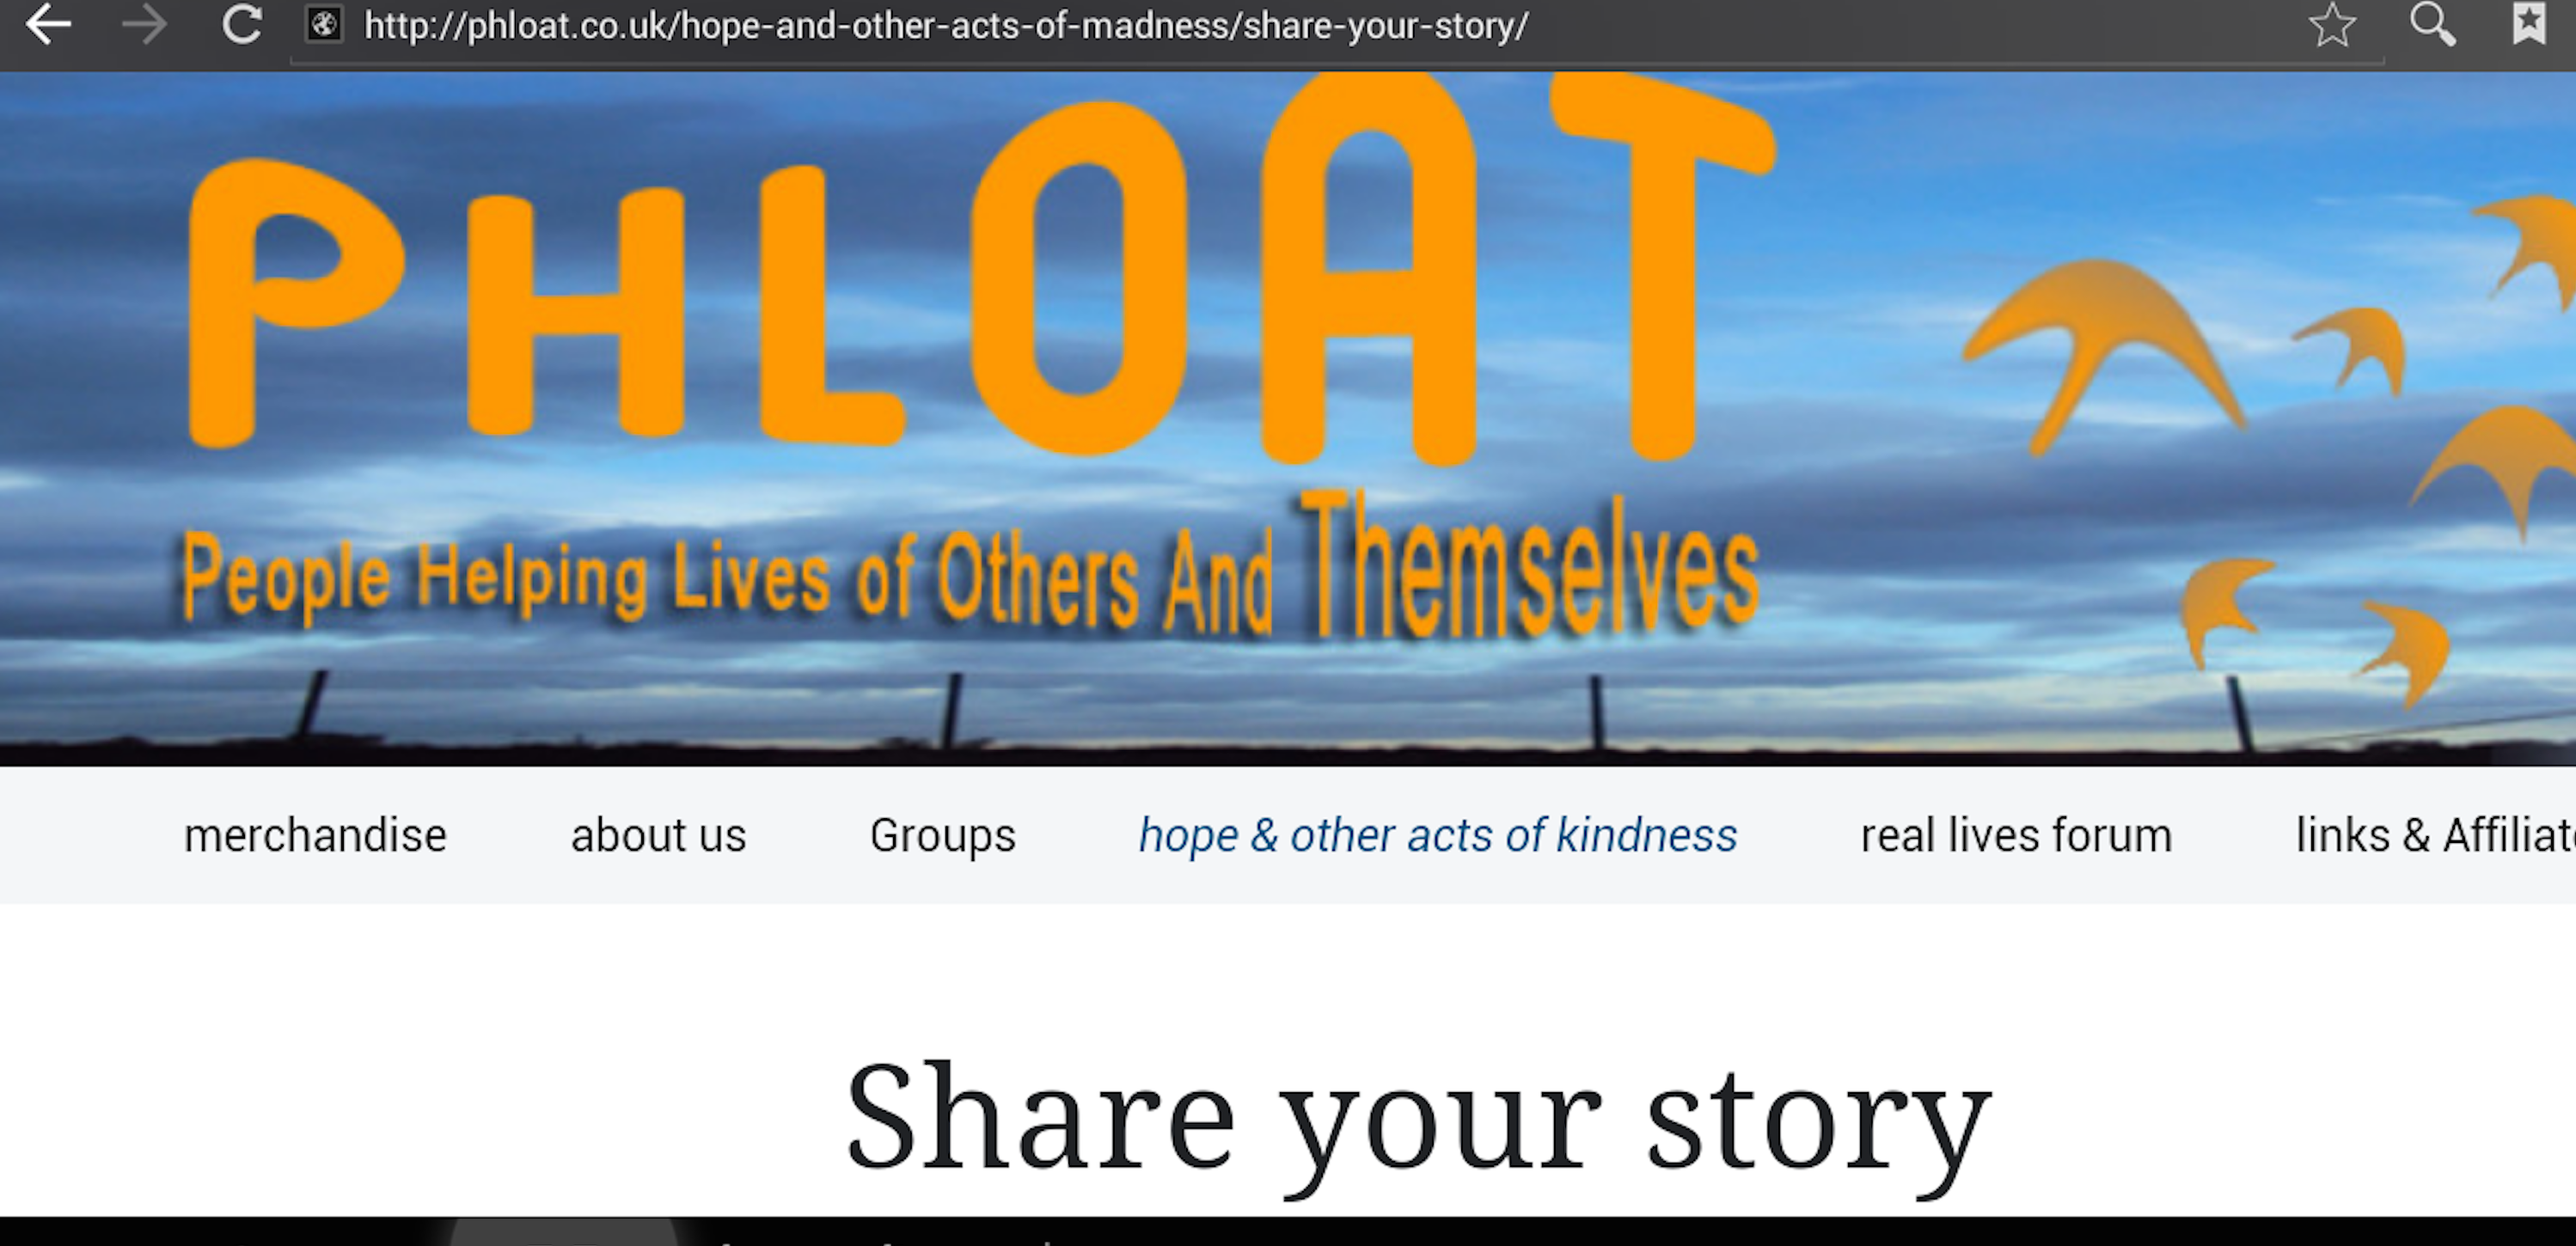 PHLOAT.co.uk People Helping Lives of Others And Themselves